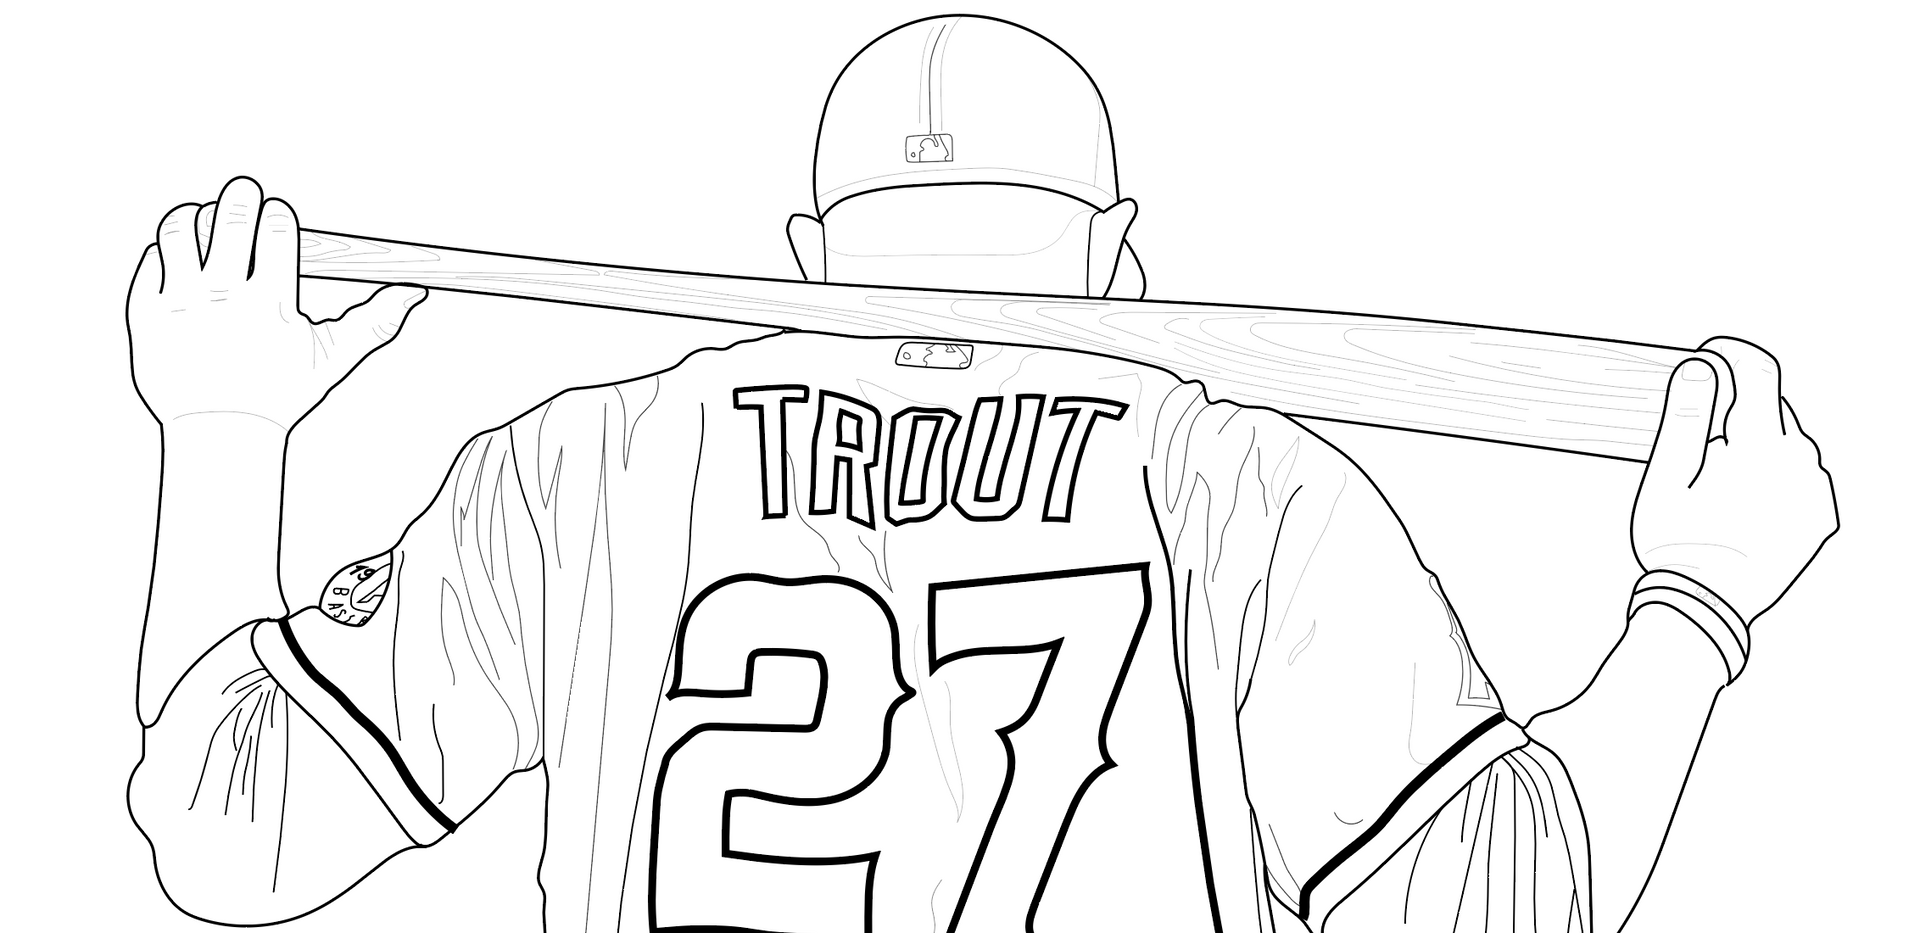 Sketch of Mike Trout